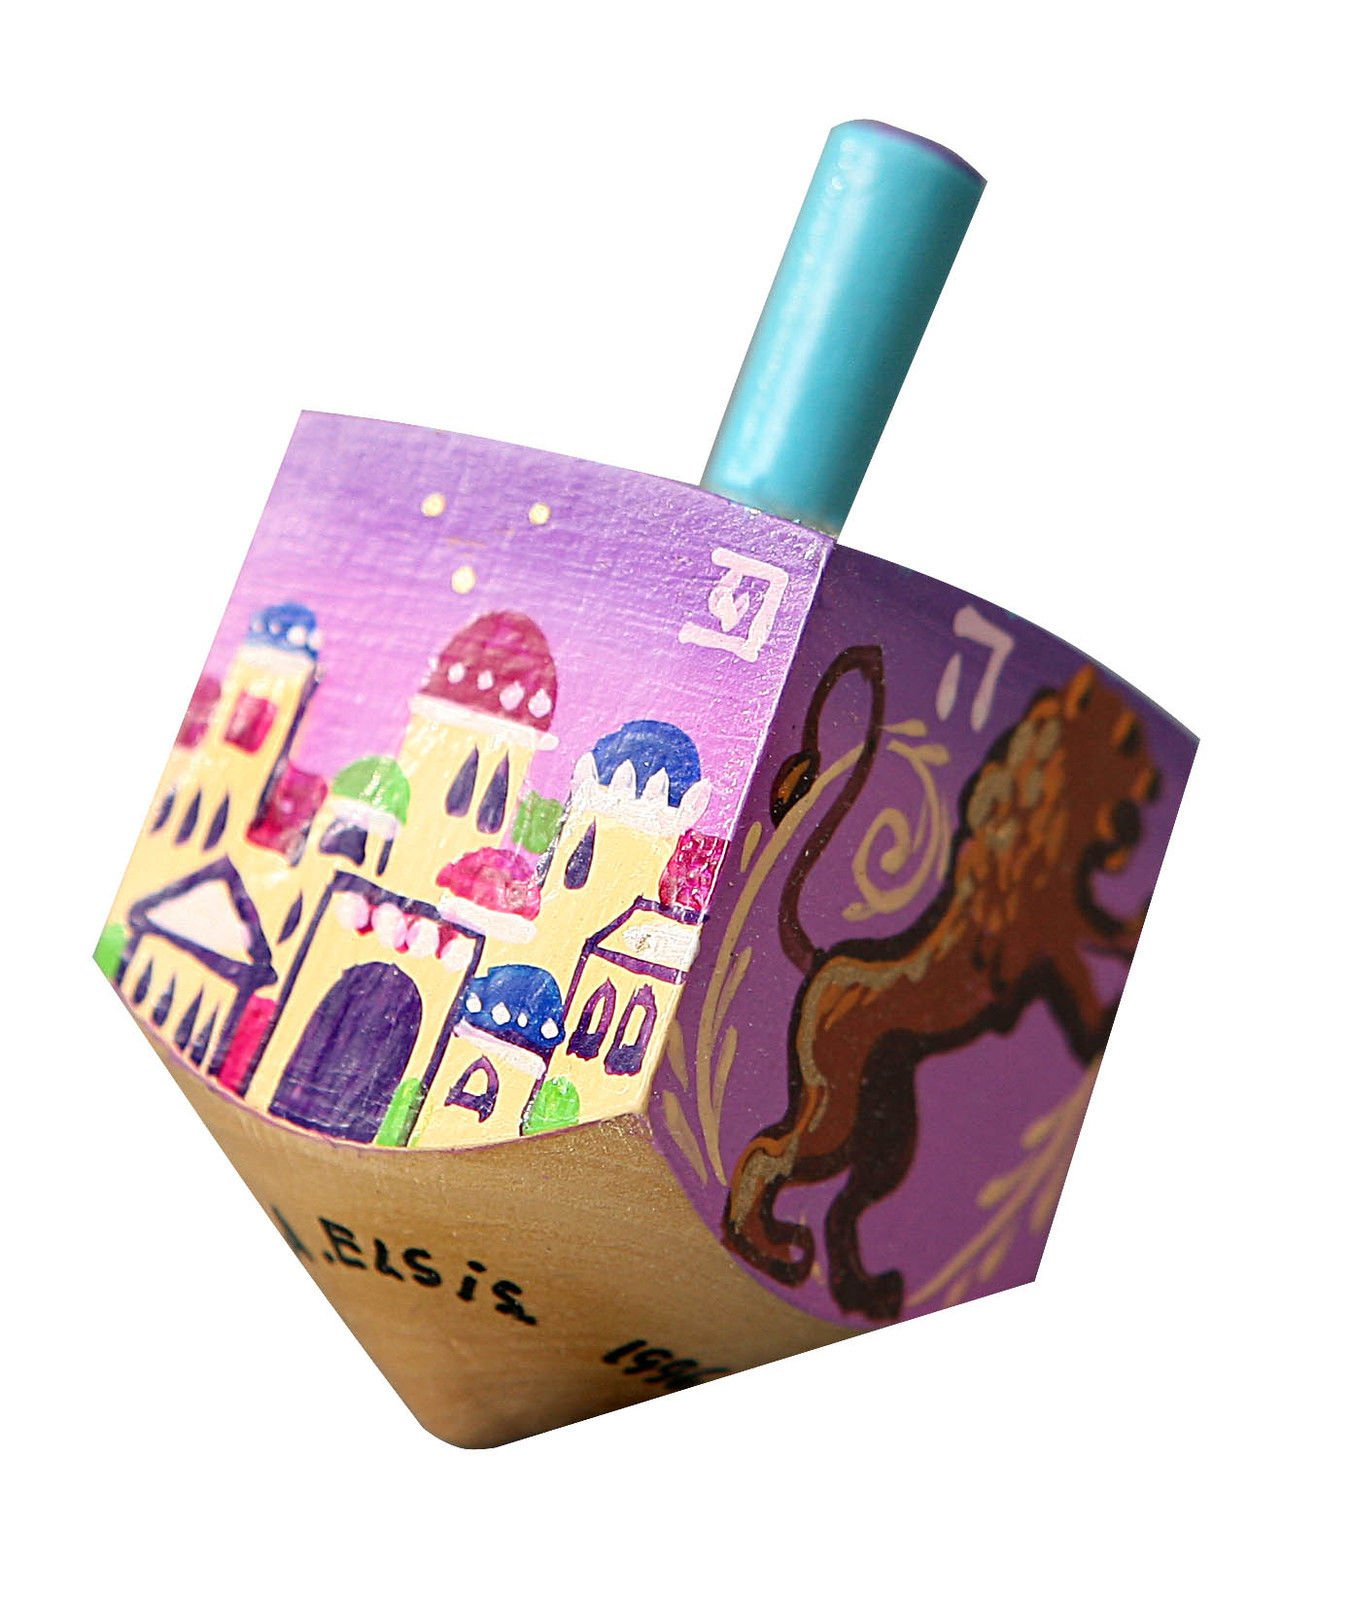 Hanukkah Chanukkah Dreidel Wood Hand Painted , Colorful Jerusalem Skyline Made By The Artist A. Elsis , 2.75'' x 1.4'' , Perfect & Great Gift for Hanukkah Collectors Kids Housewarming Birthday